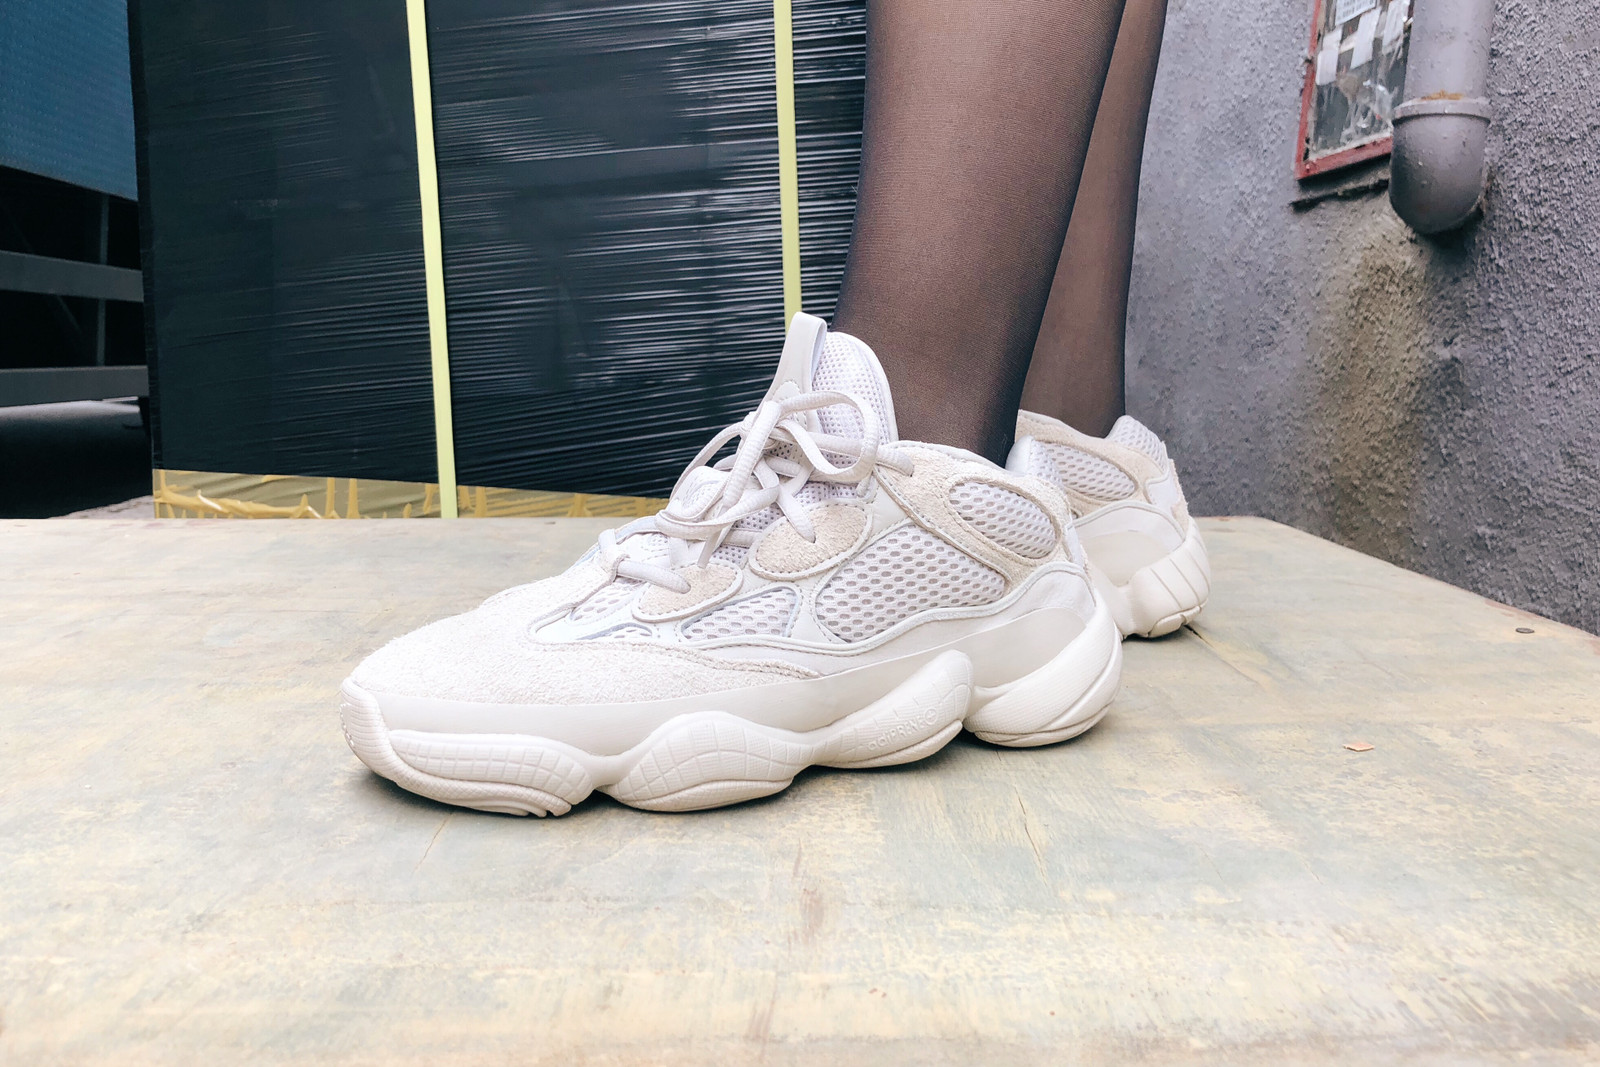 b45a1da3fcc hypebae kicks review adidas originals yeezy desert rat 500 blush on foot